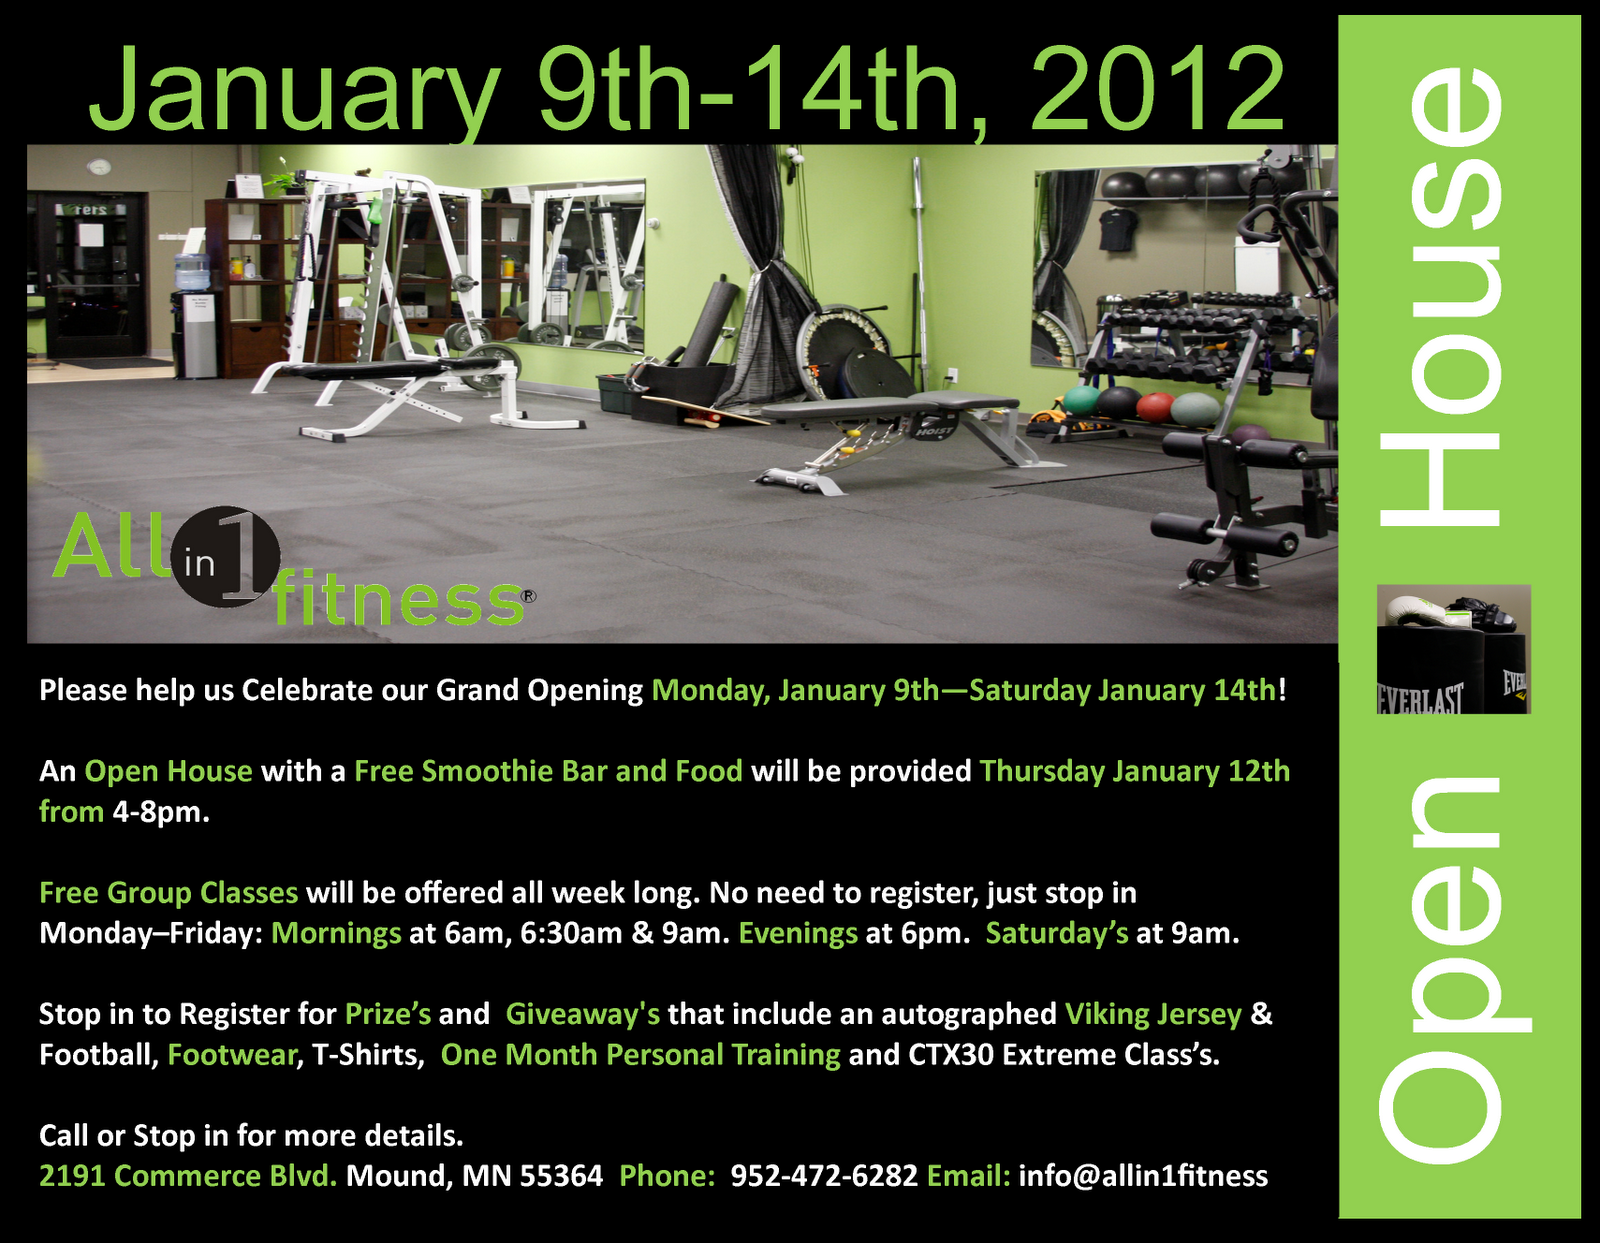 One Girl Ideas All In 1 Fitness Open House 1 9 12 1 14 12